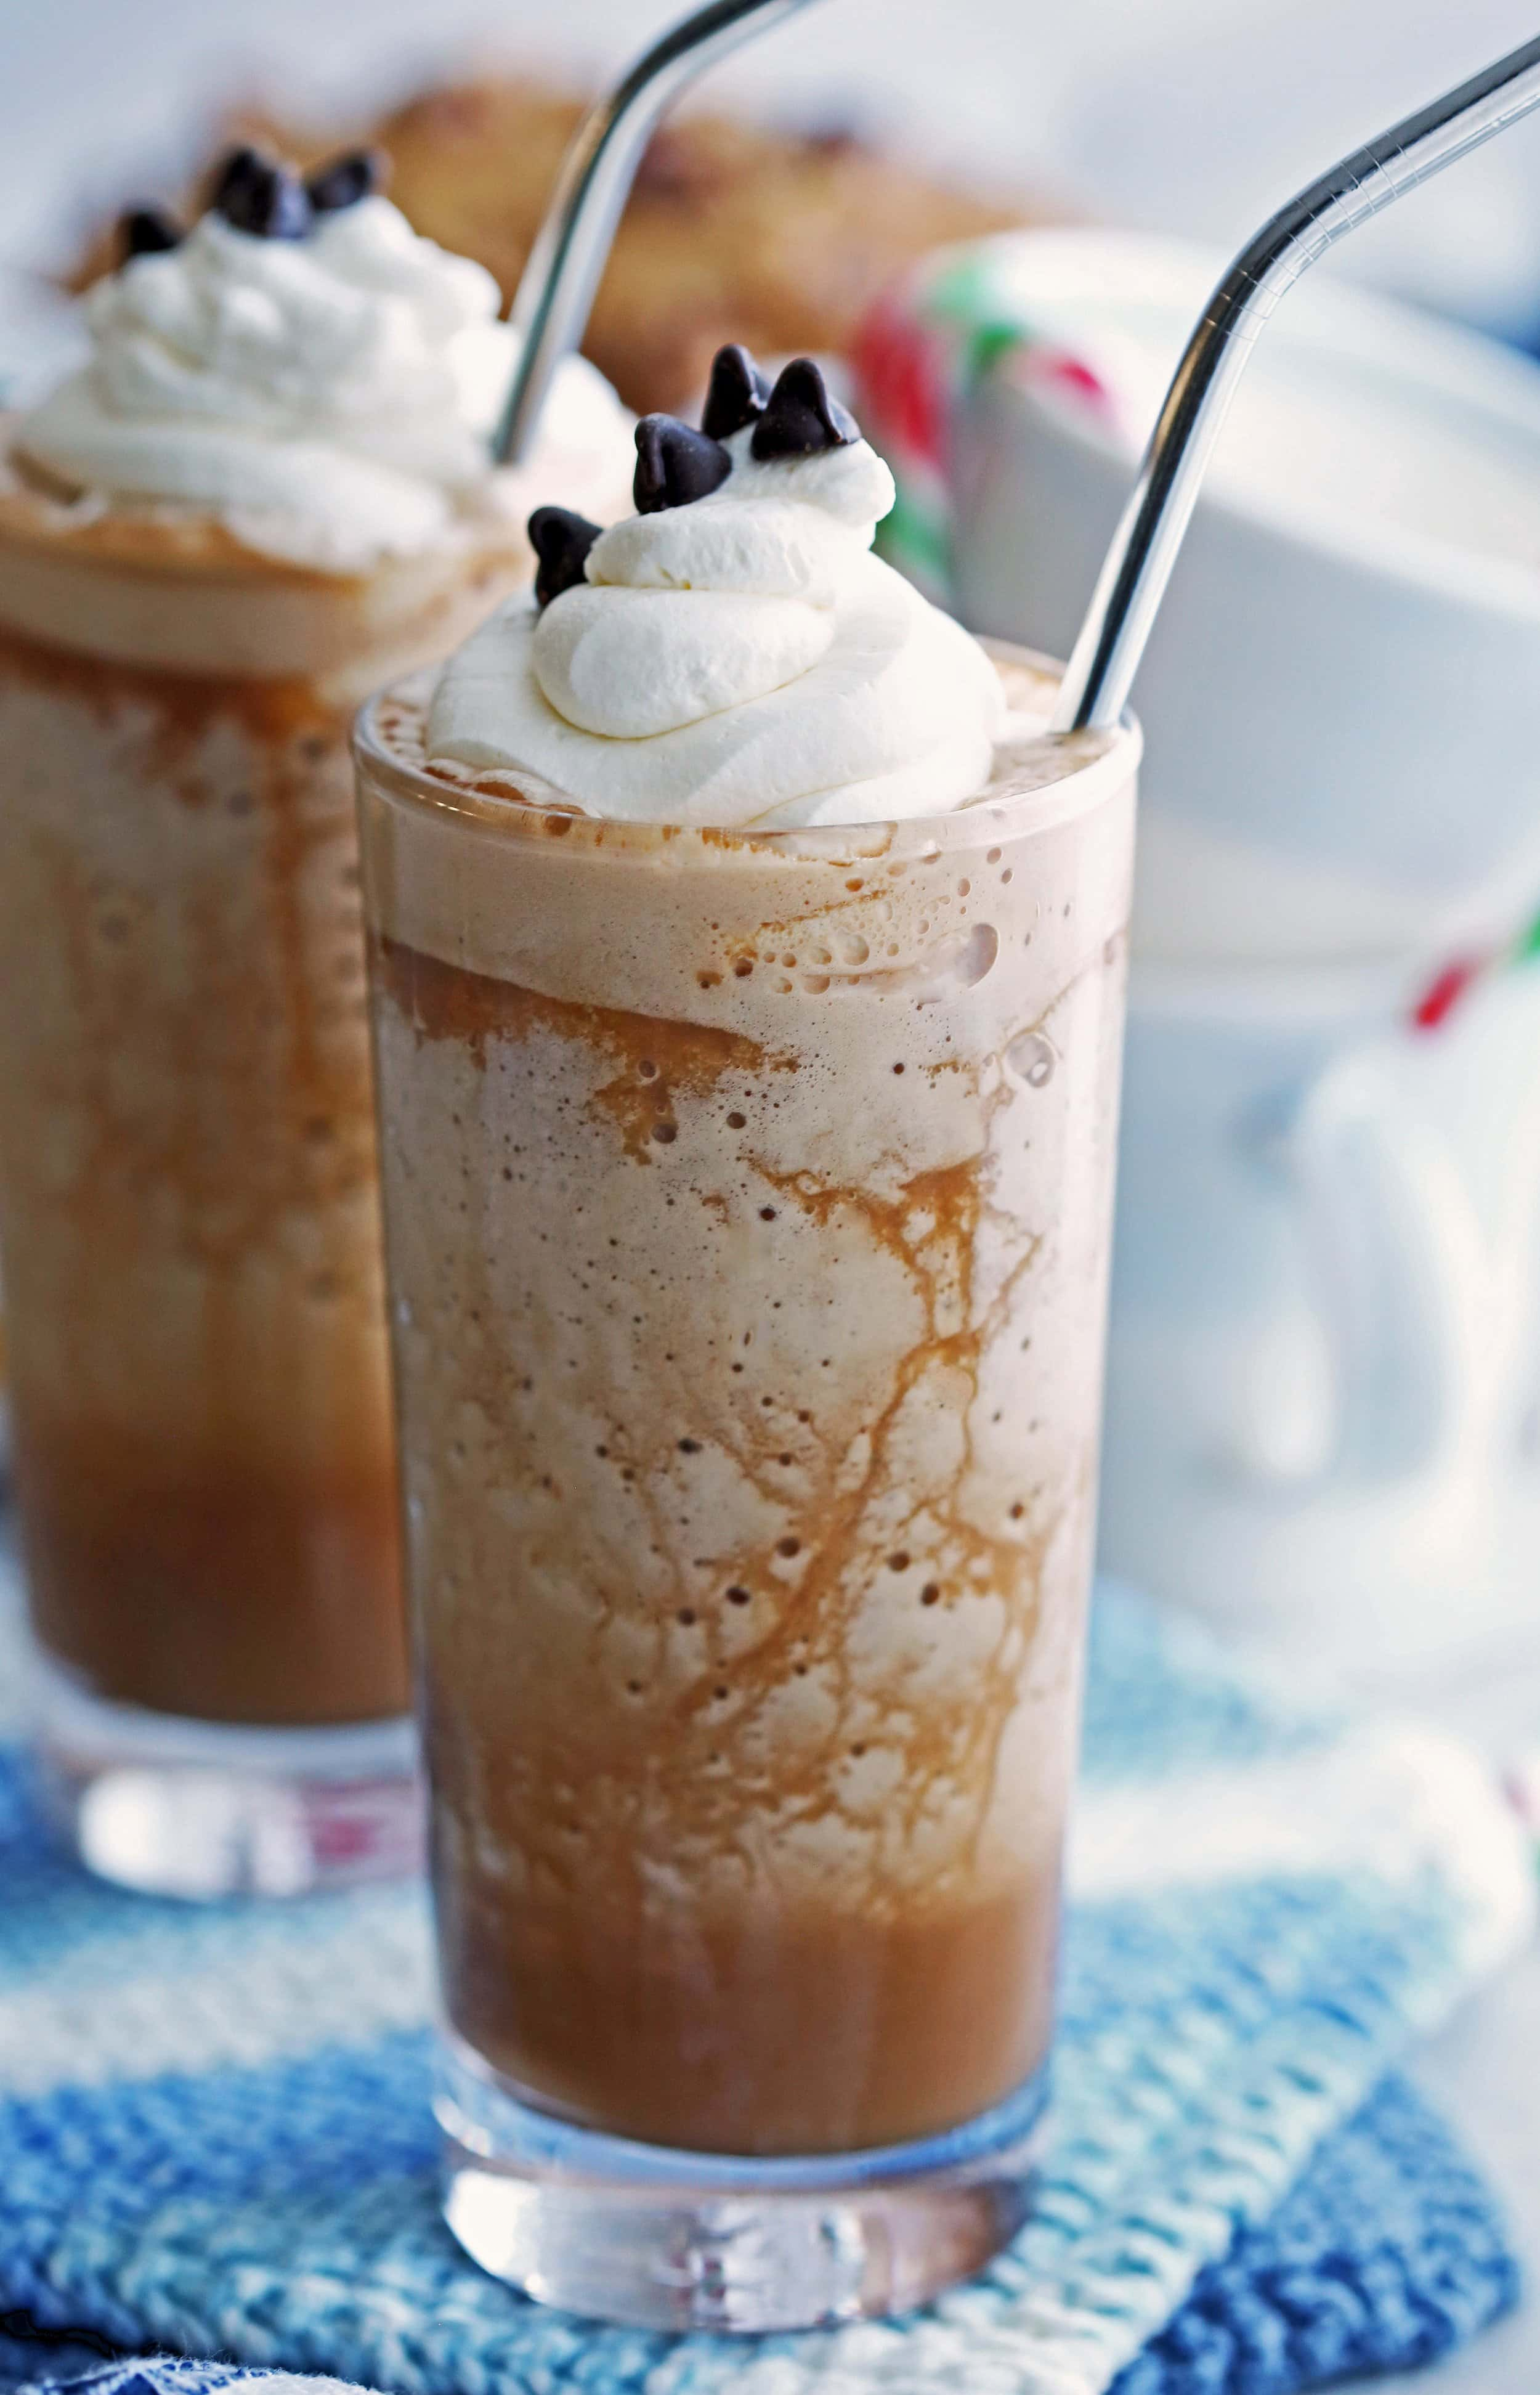 Peppermint mocha frappes topped with whipped cream and chocolate chips in two tall drinking glasses.